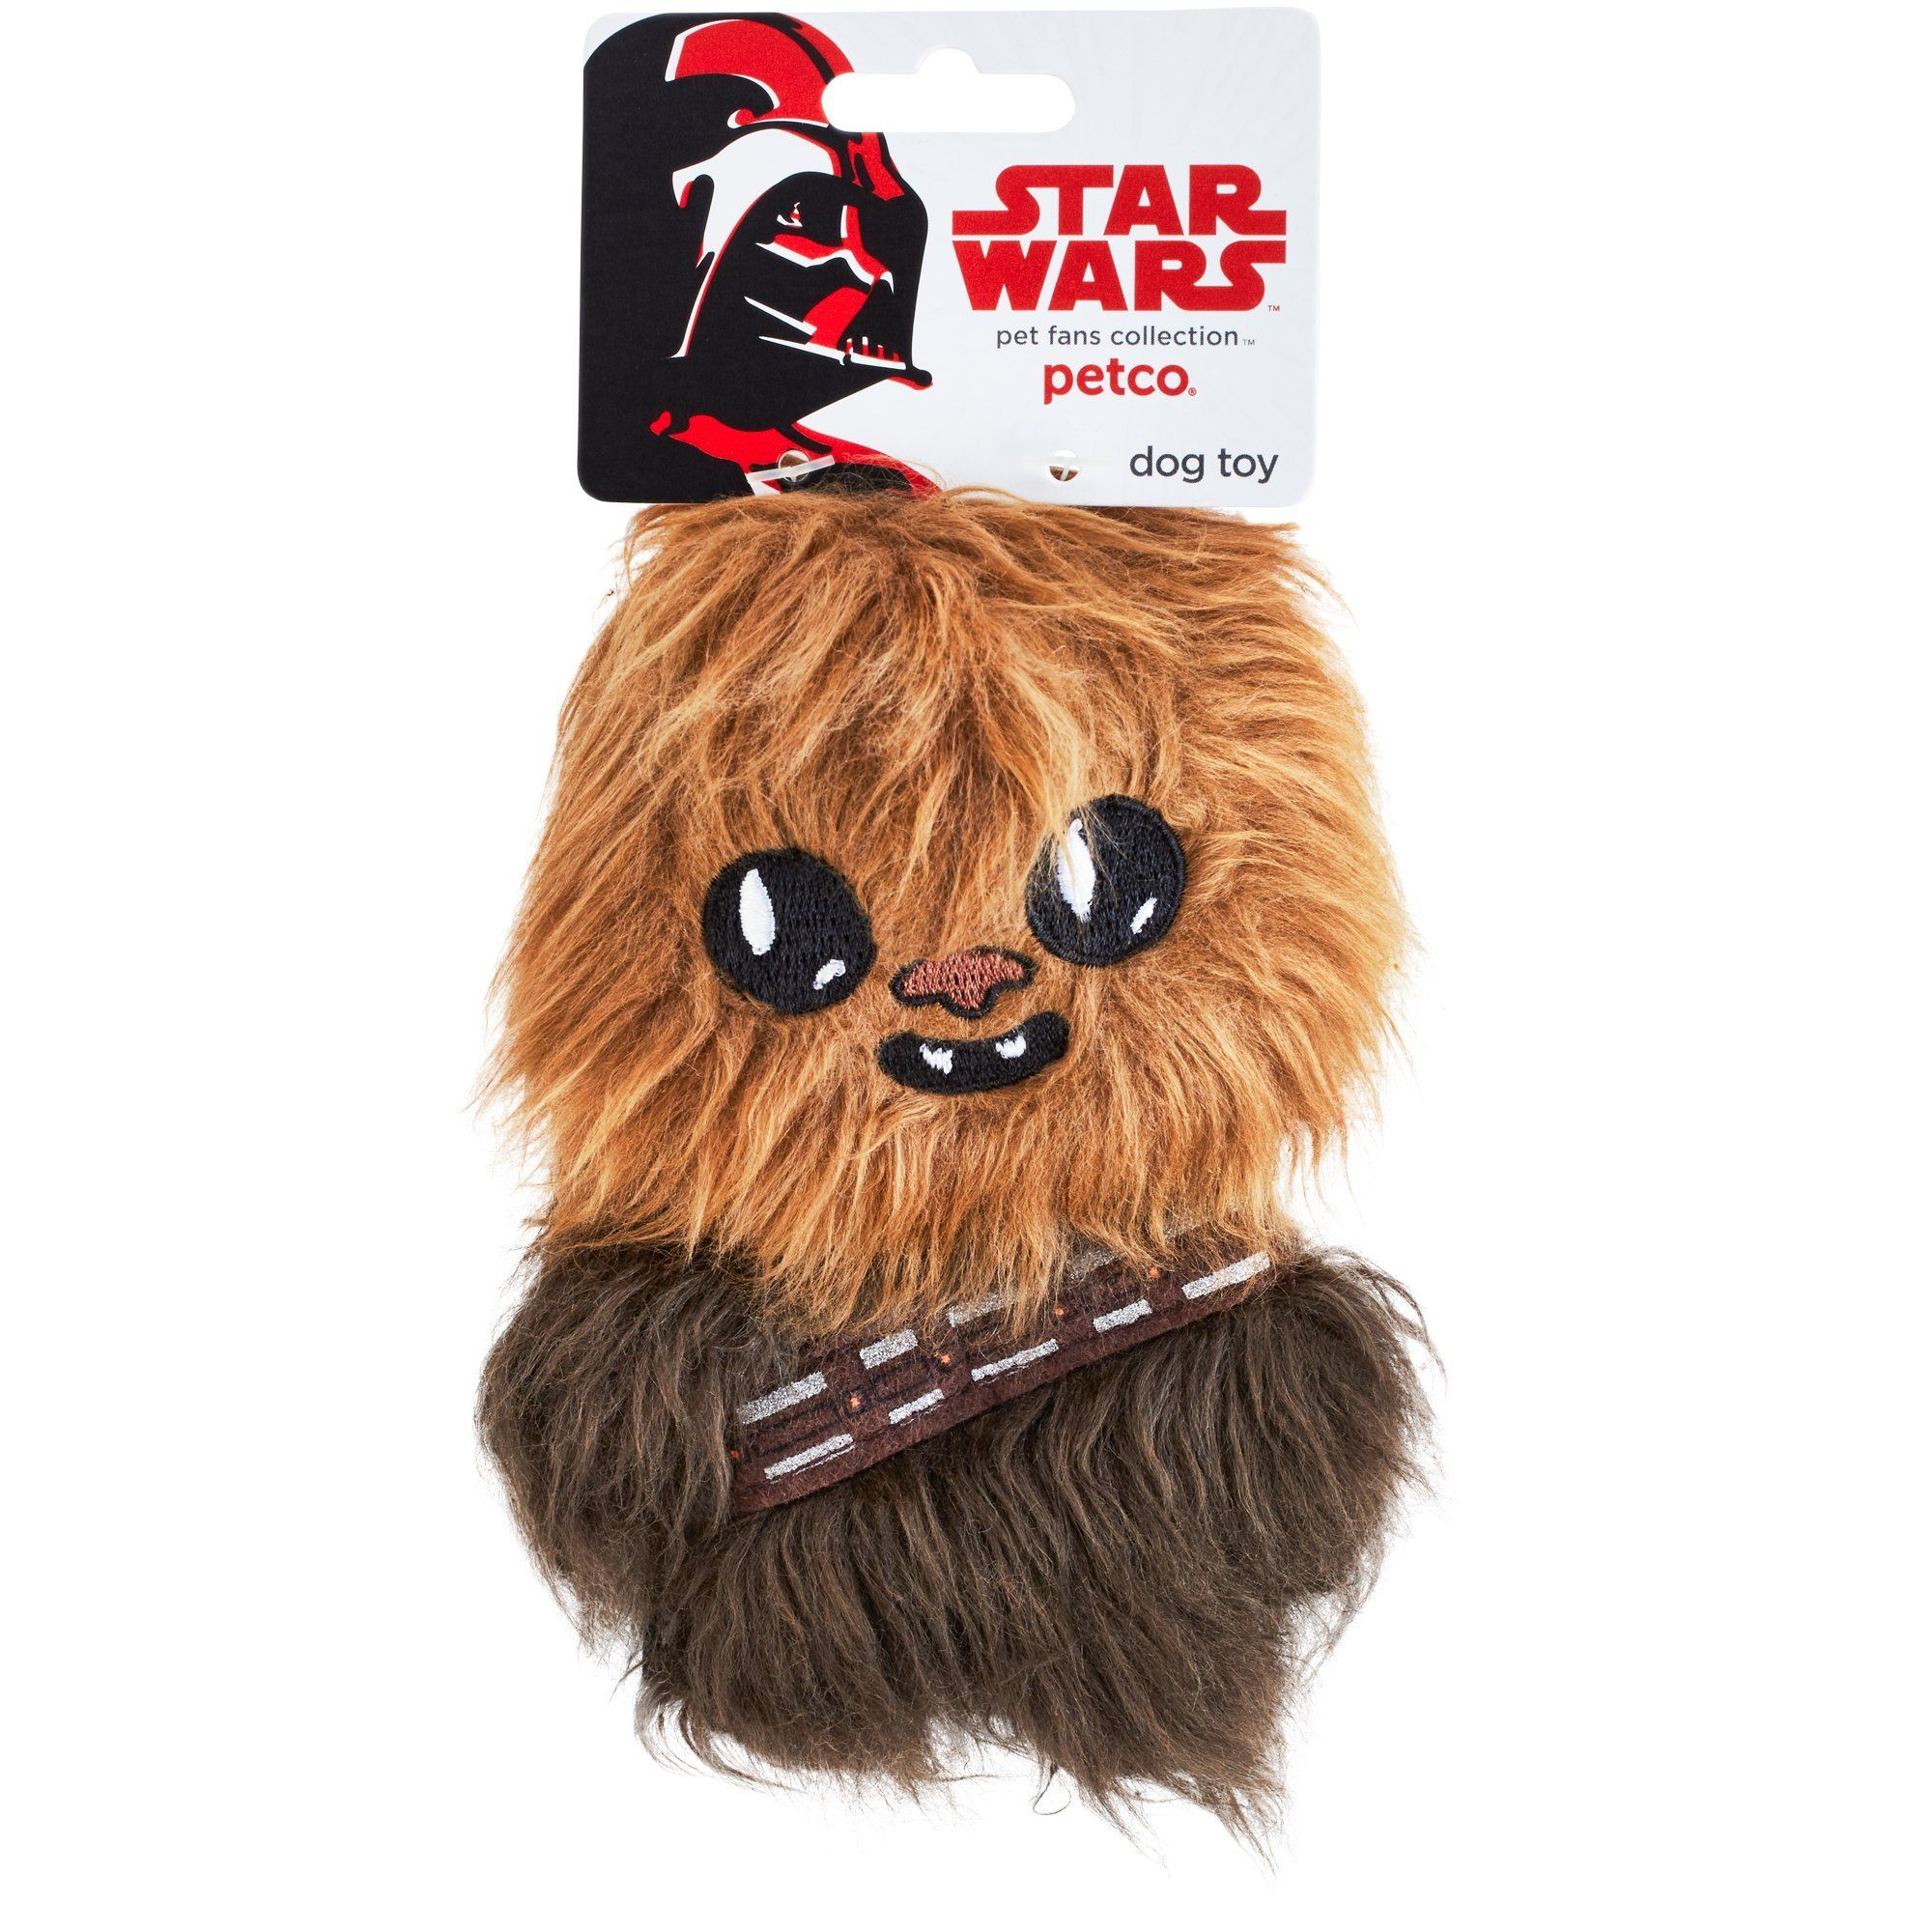 Star Wars Chewbacca Flattie Dog Toy 6 L By Petco For More